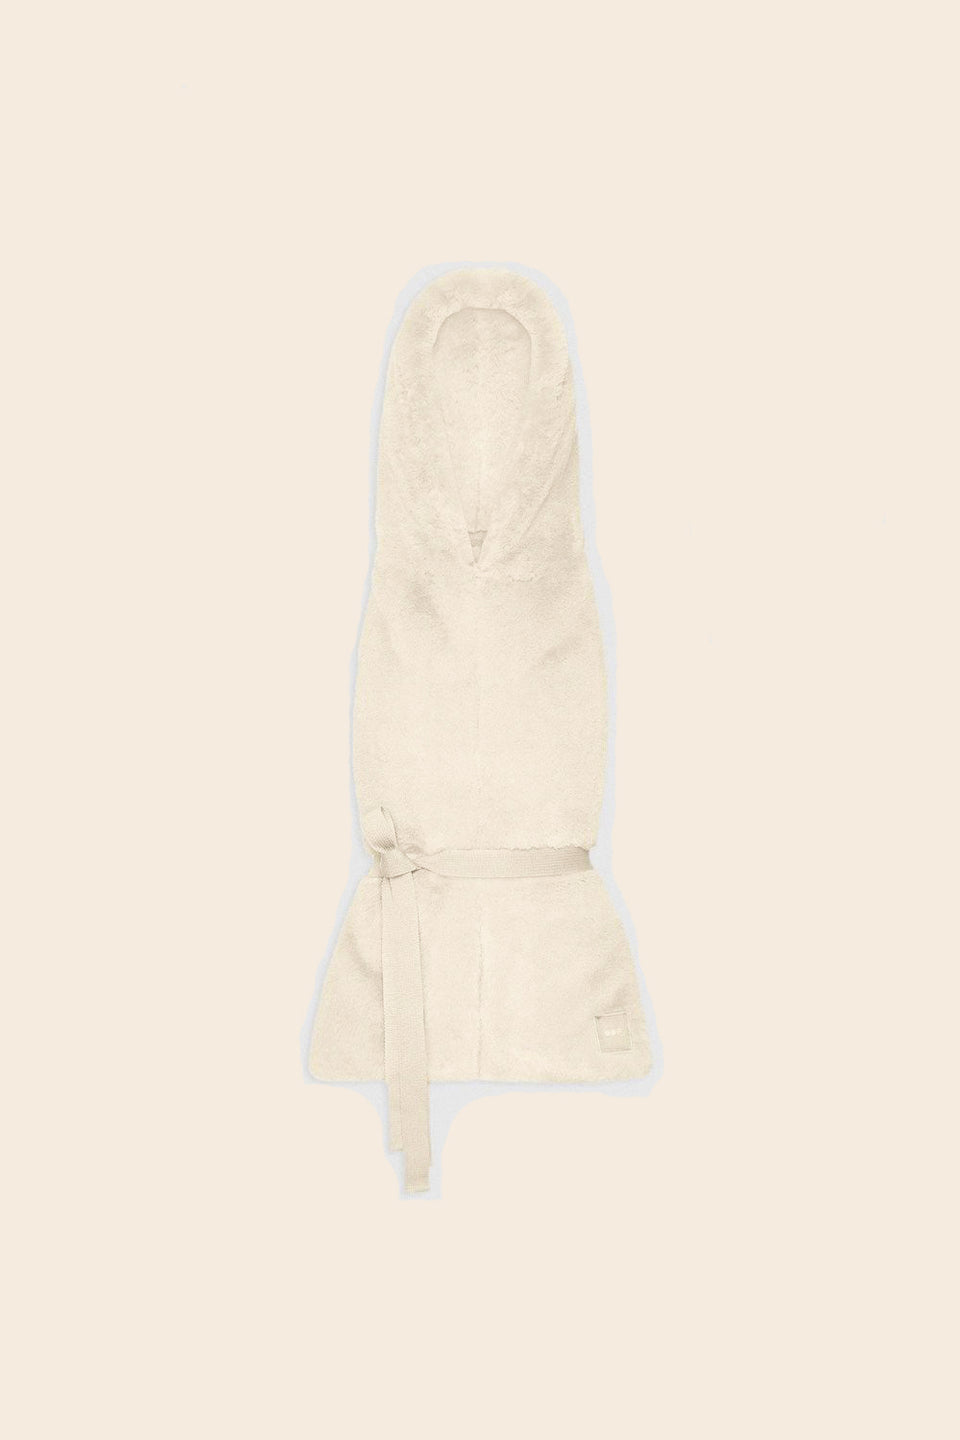 OOF • Capuche-Gilet 3010 Fausse Fourrure Blanche